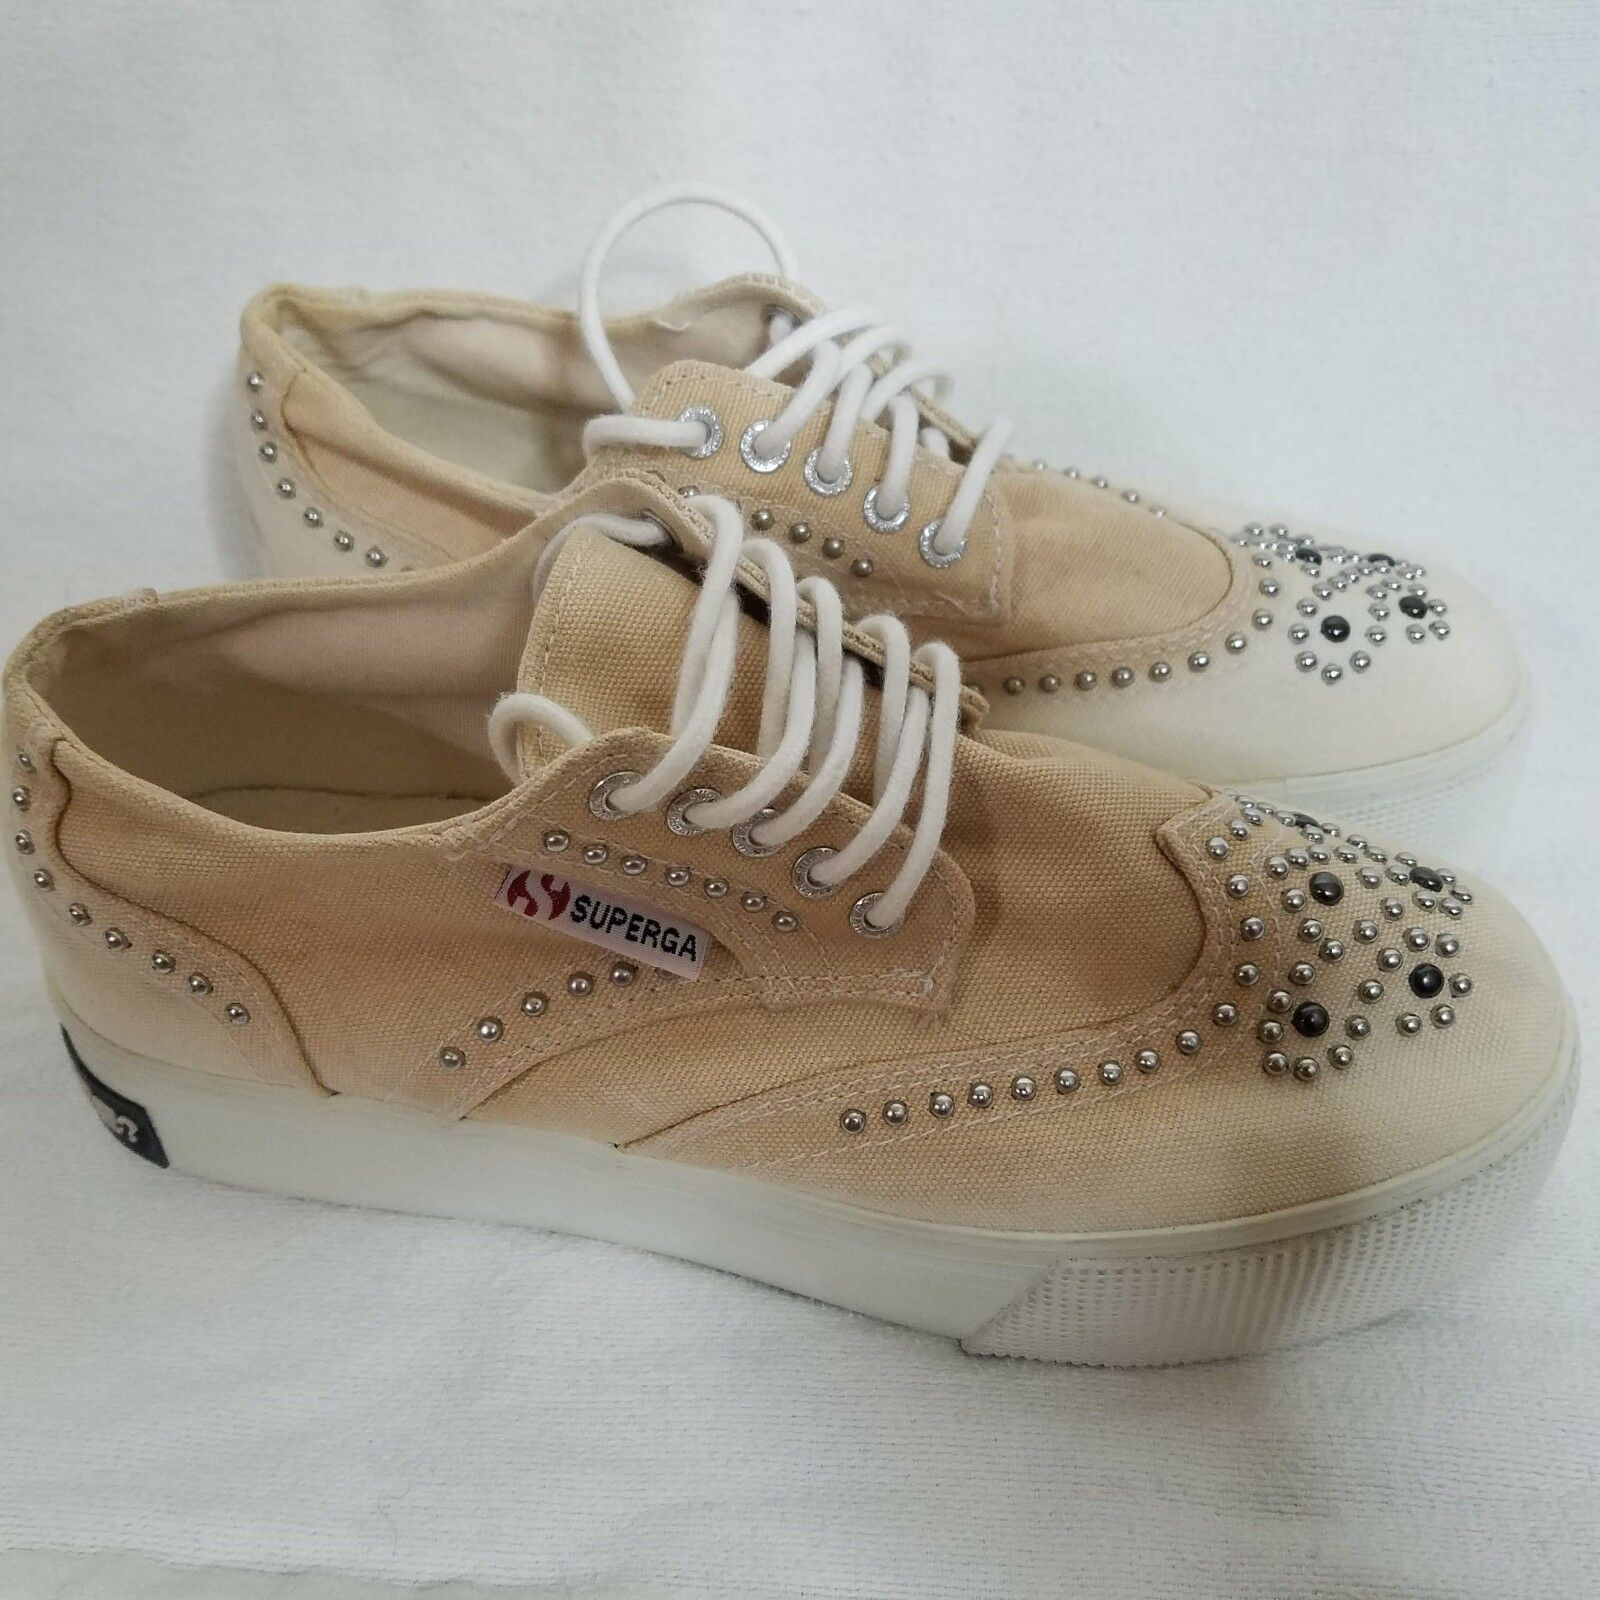 Superga x Collection Privee Womens Beige Beaded Sneakers shoes US Size 6